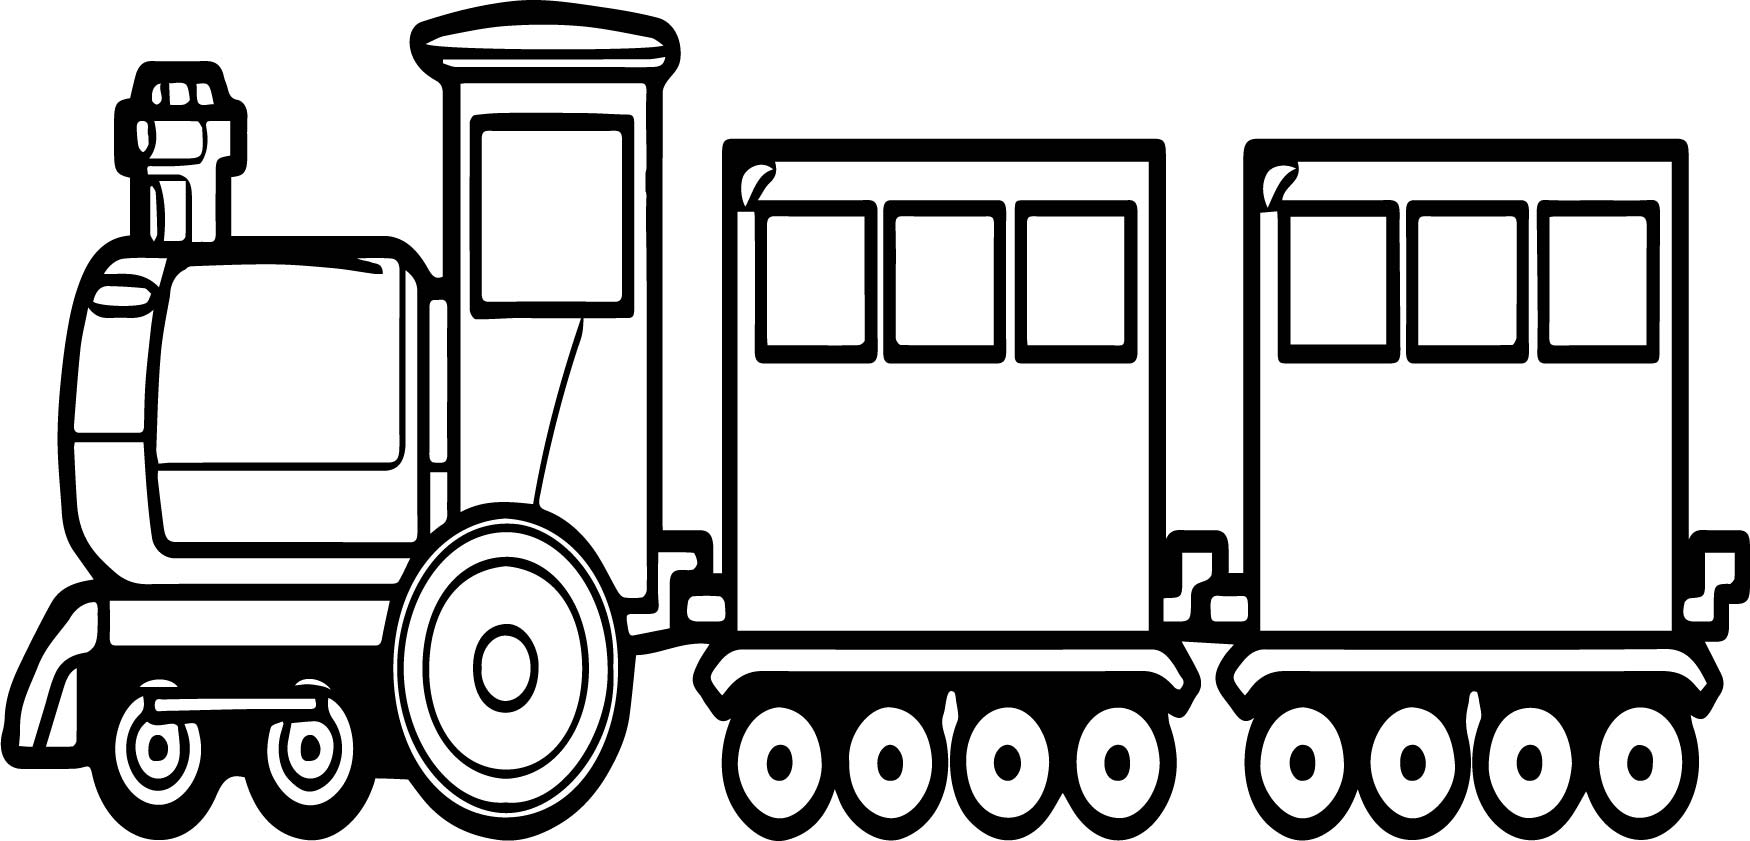 printable steam train coloring pages free printable train coloring pages for kids cool2bkids train coloring printable pages steam